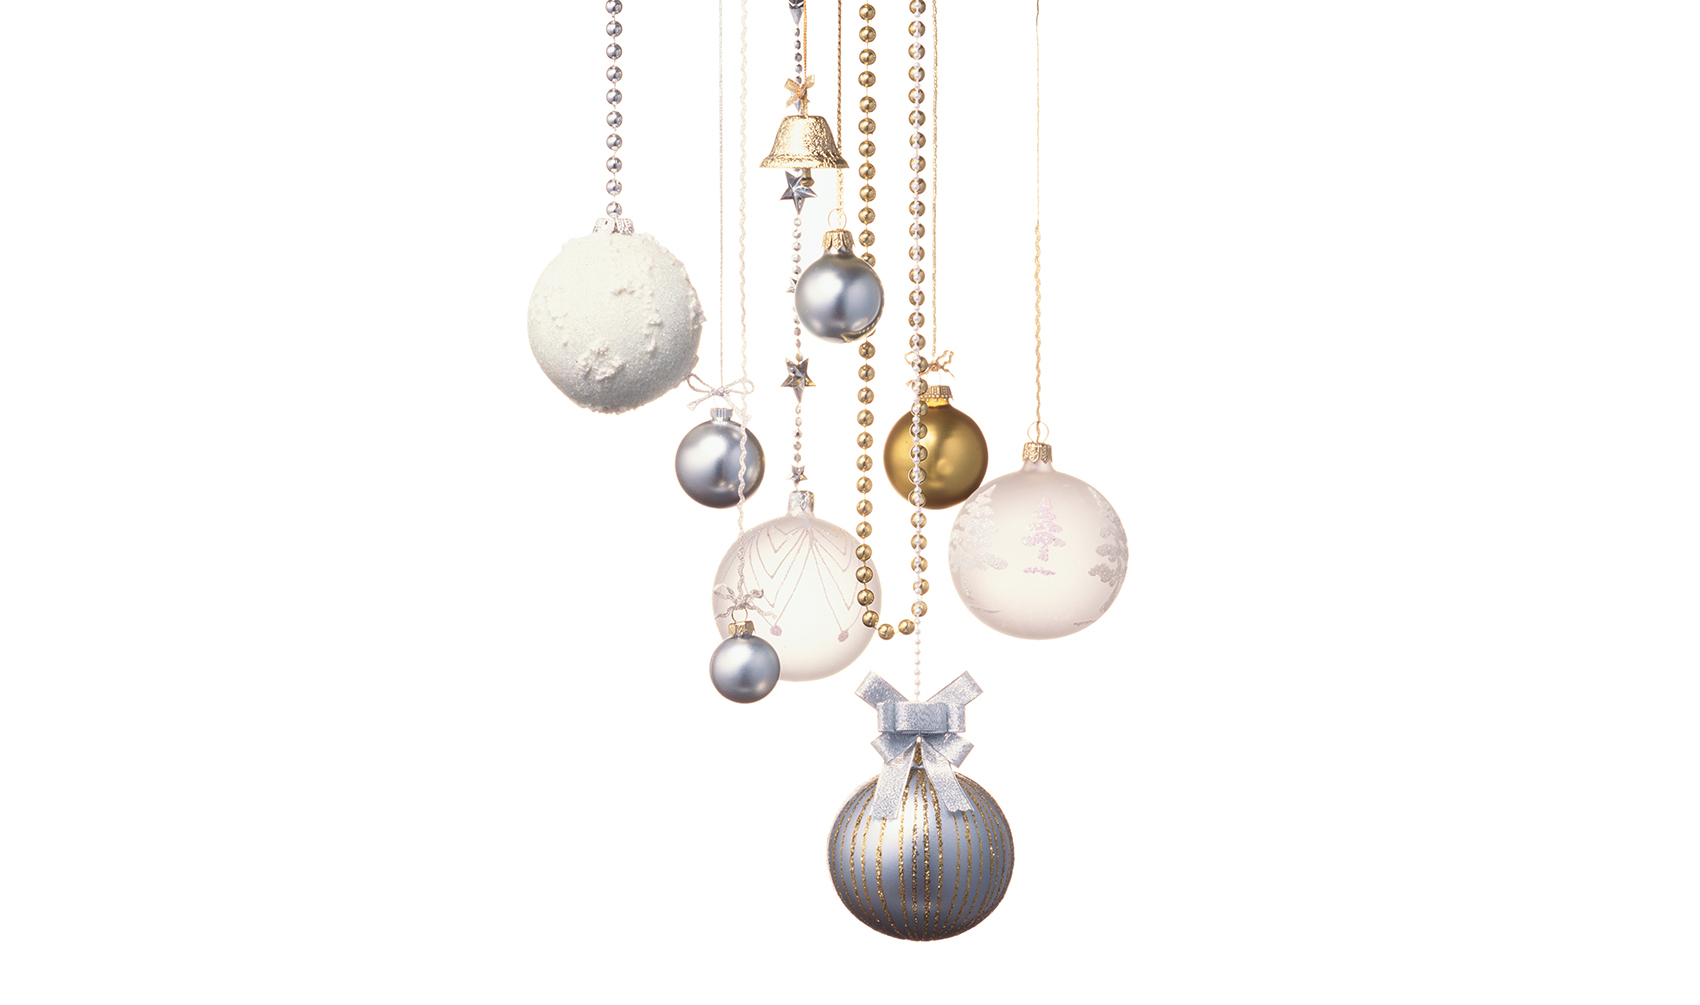 Gold and silver holiday ornaments